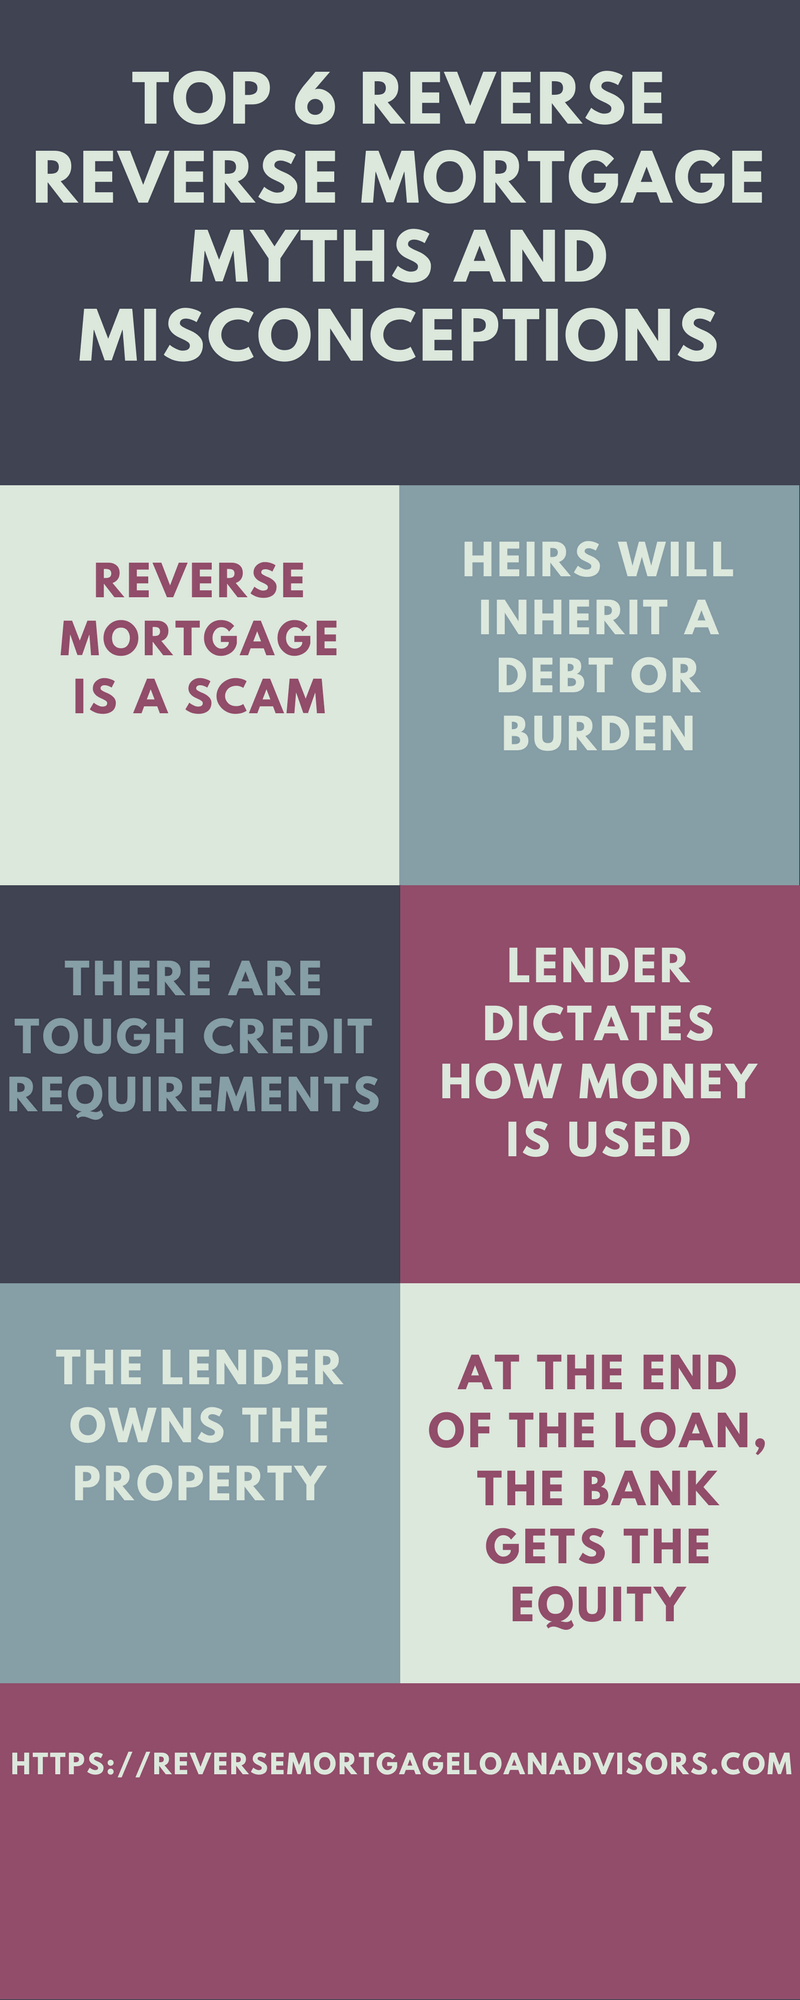 Top 6 Reverse Mortgage Myths and Misconceptions